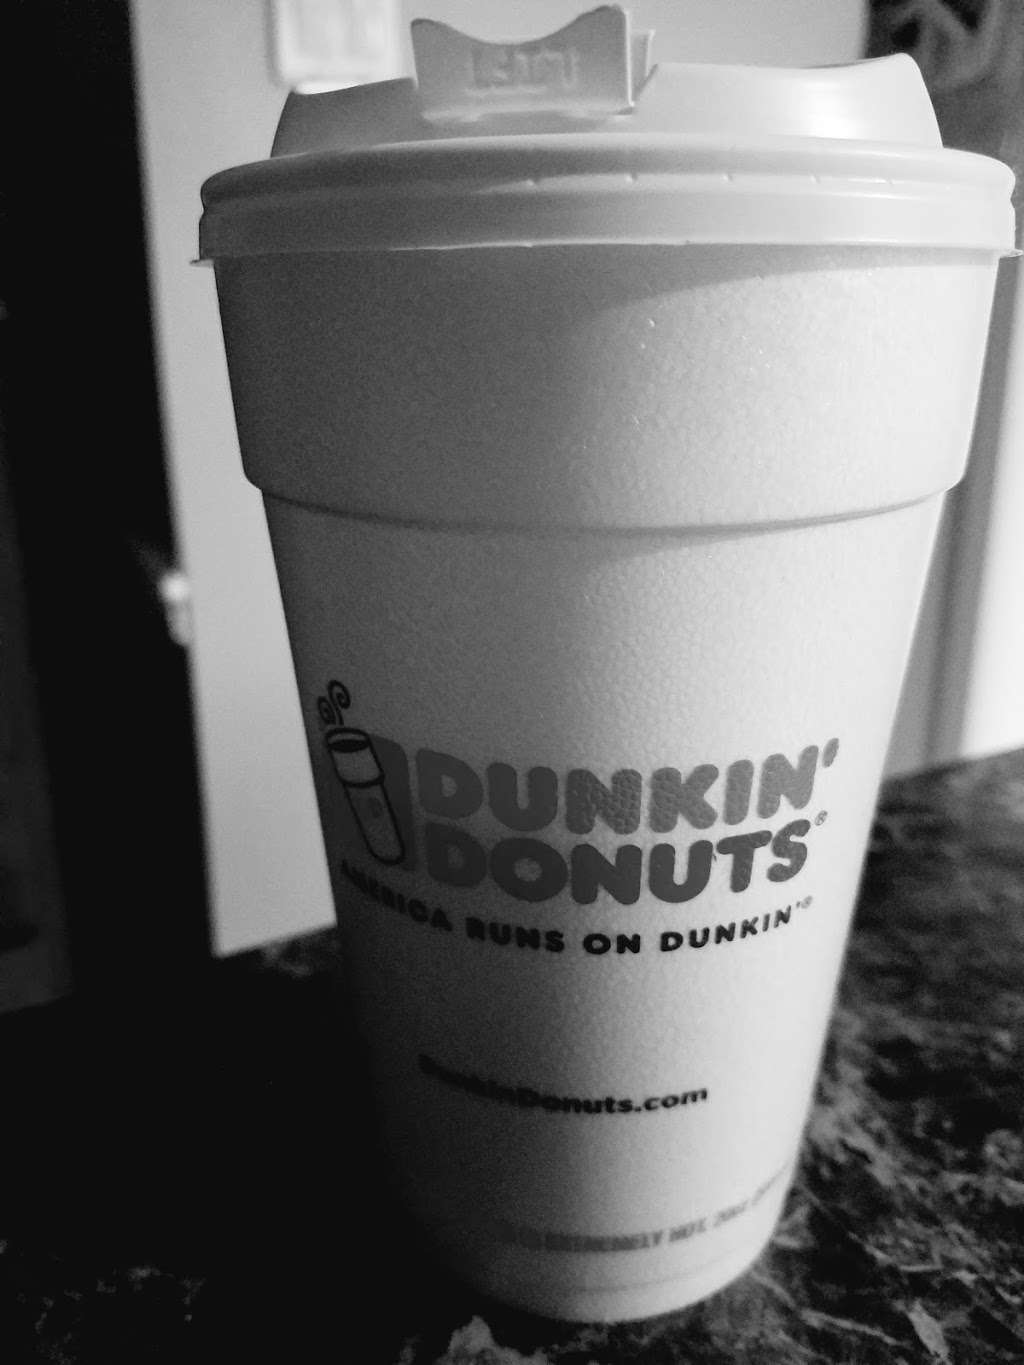 Dunkin Donuts - cafe  | Photo 6 of 10 | Address: 3804 Kirkwood Hwy, Wilmington, DE 19808, USA | Phone: (302) 998-1600